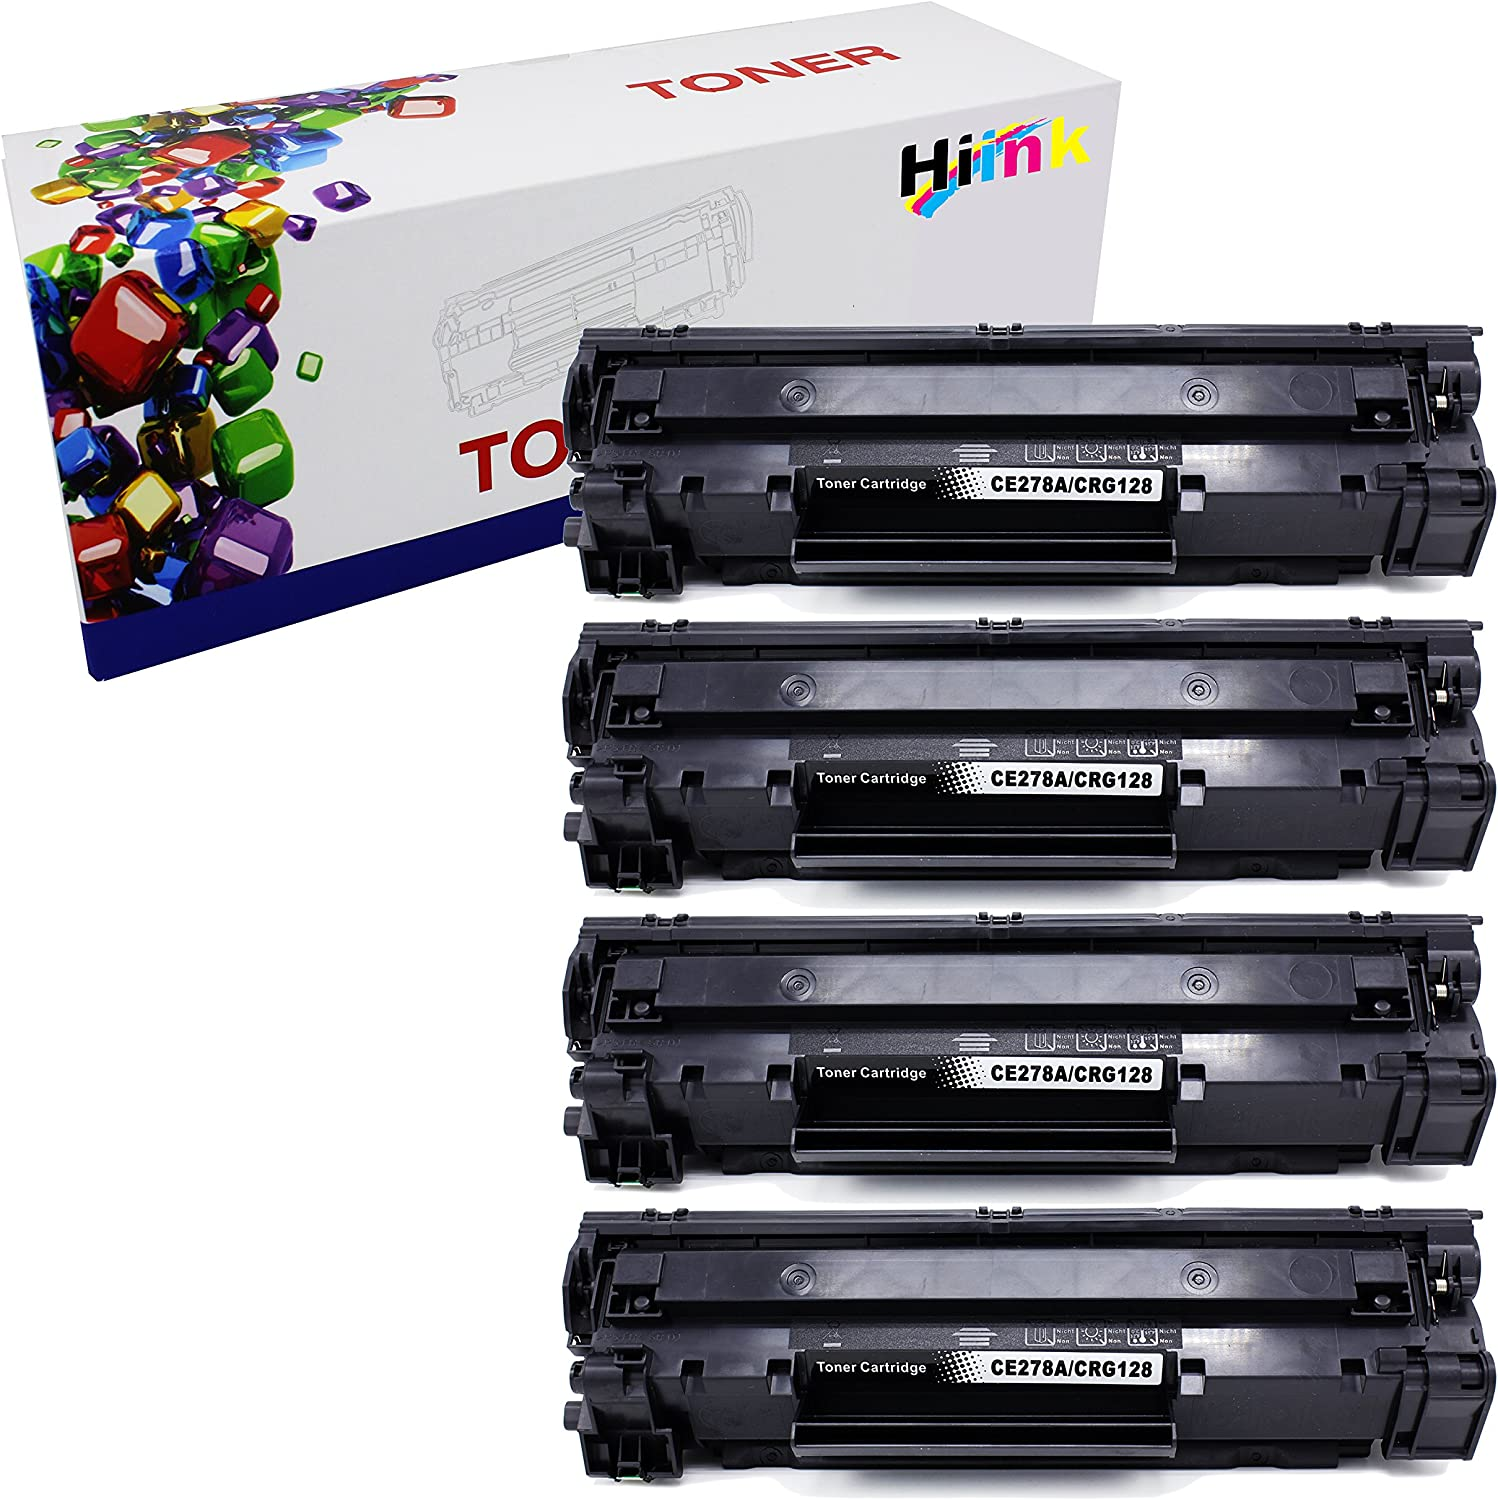 HIINK Compatible Toner for HP CE278A 78A Canon CRG128 Use with HP Laserjet Pro P1560 P1566 P1600 P1606 M1536 Canon imageclass D530 D550 FaxPhone L100 L190 MF4770n MF4570dw MF4770N(Black 4-Pack)